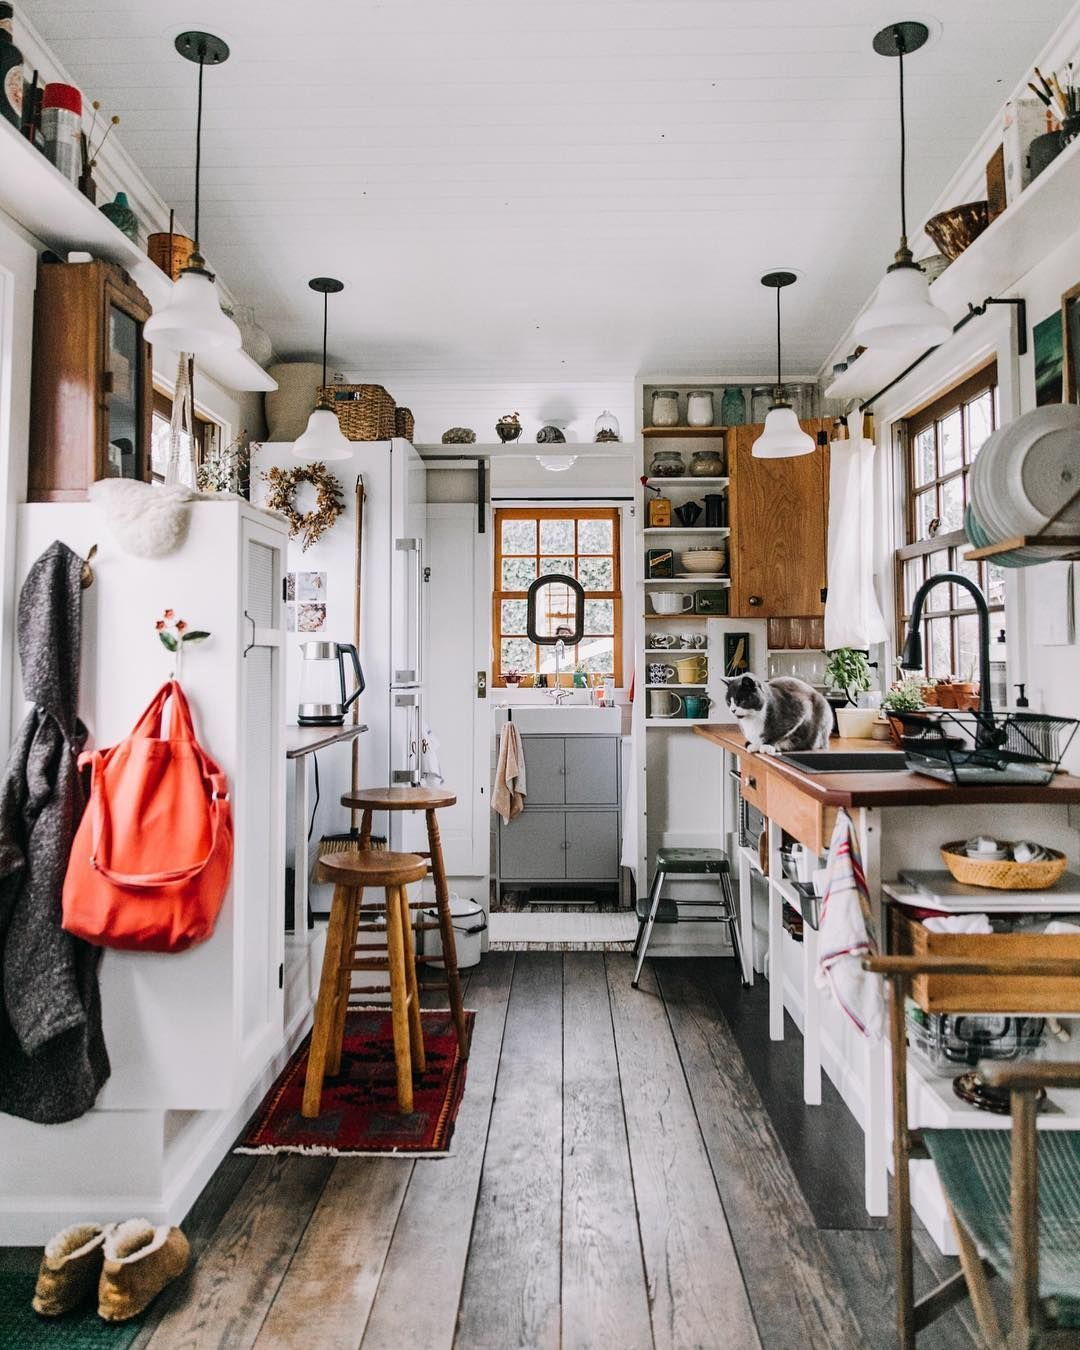 On Our Instagram Story Today We Re Taking A Peek Inside This 160 Square Foot Custom Built Tiny Home Tiny House Interior Tiny House Kitchen Tiny House Design